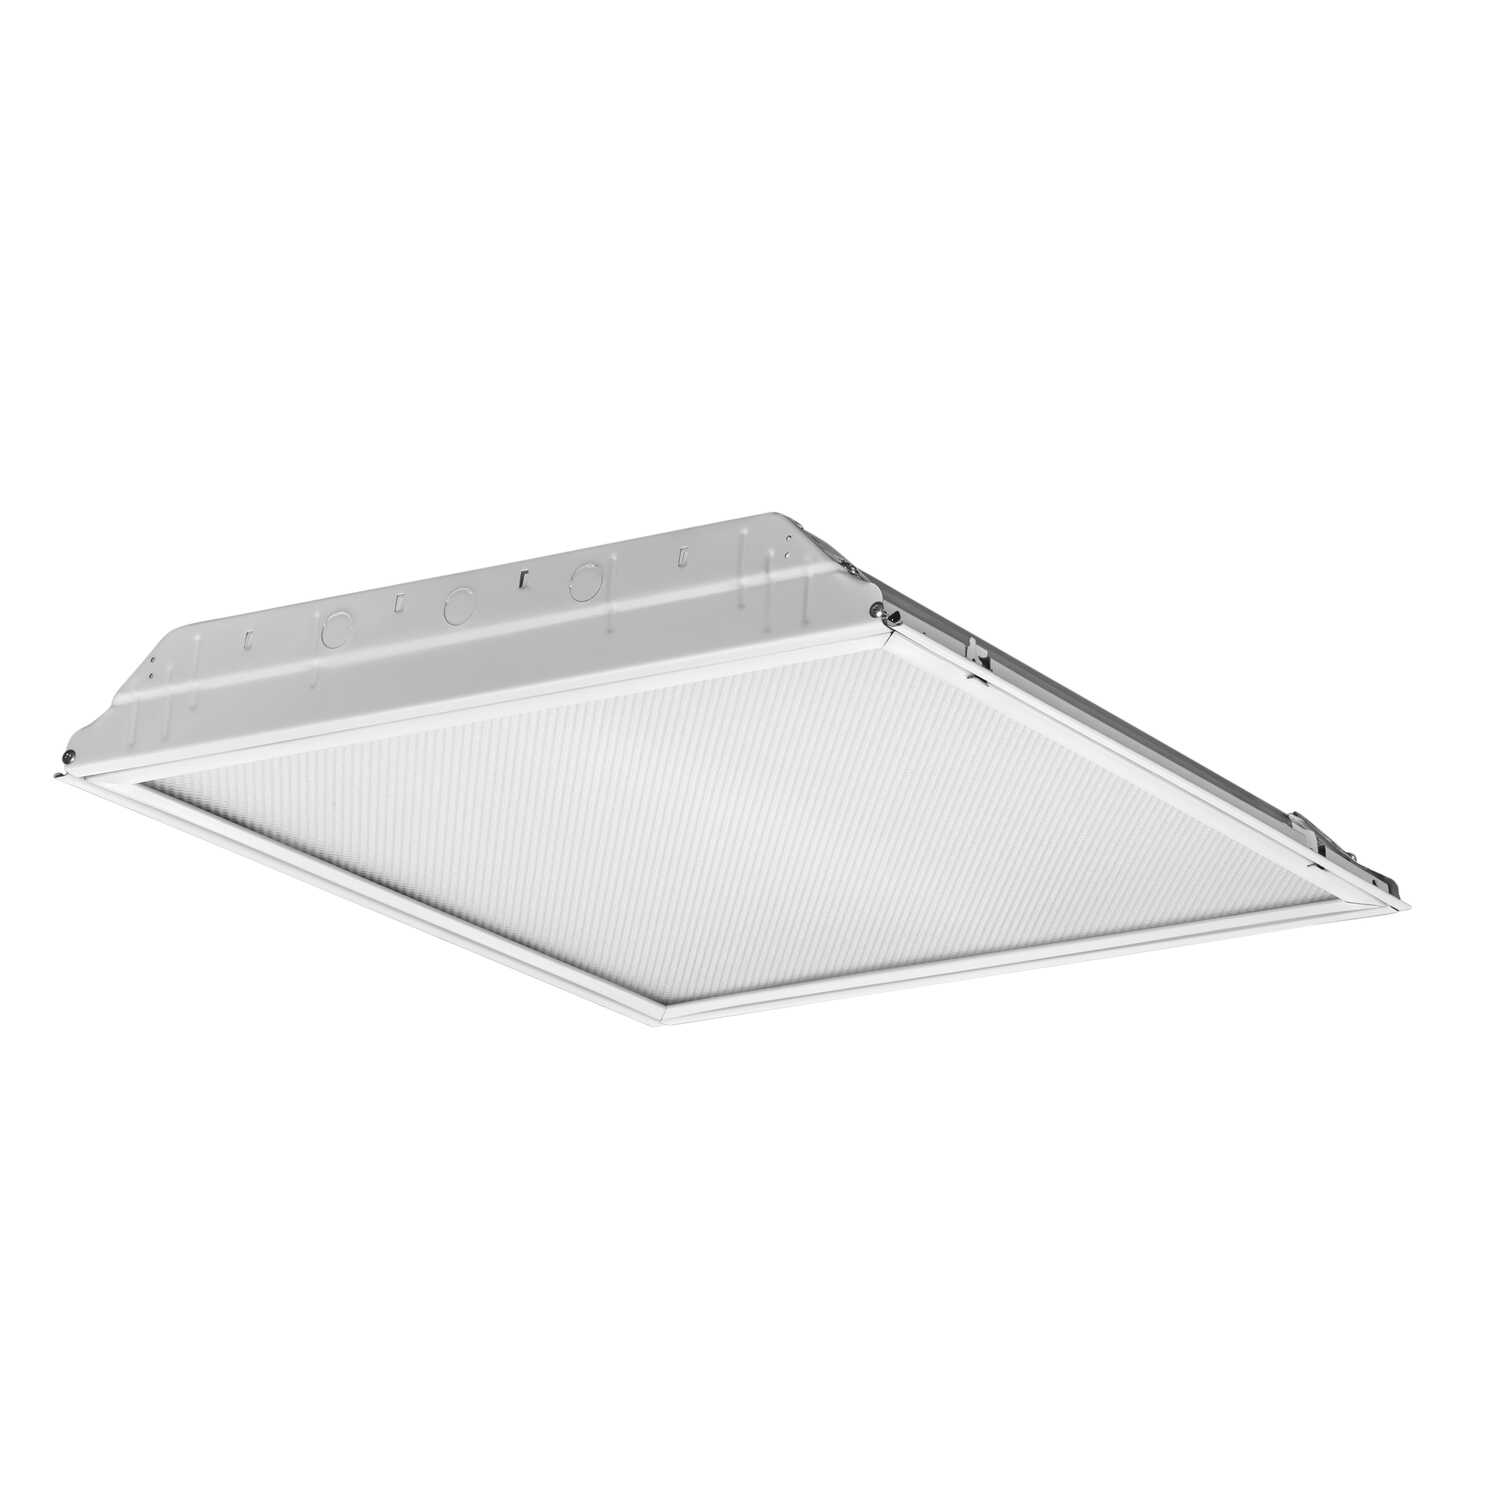 Lithonia Lighting  LED Troffer Fixture  3-1/4 in. 24 in. 24 in. 35 watts